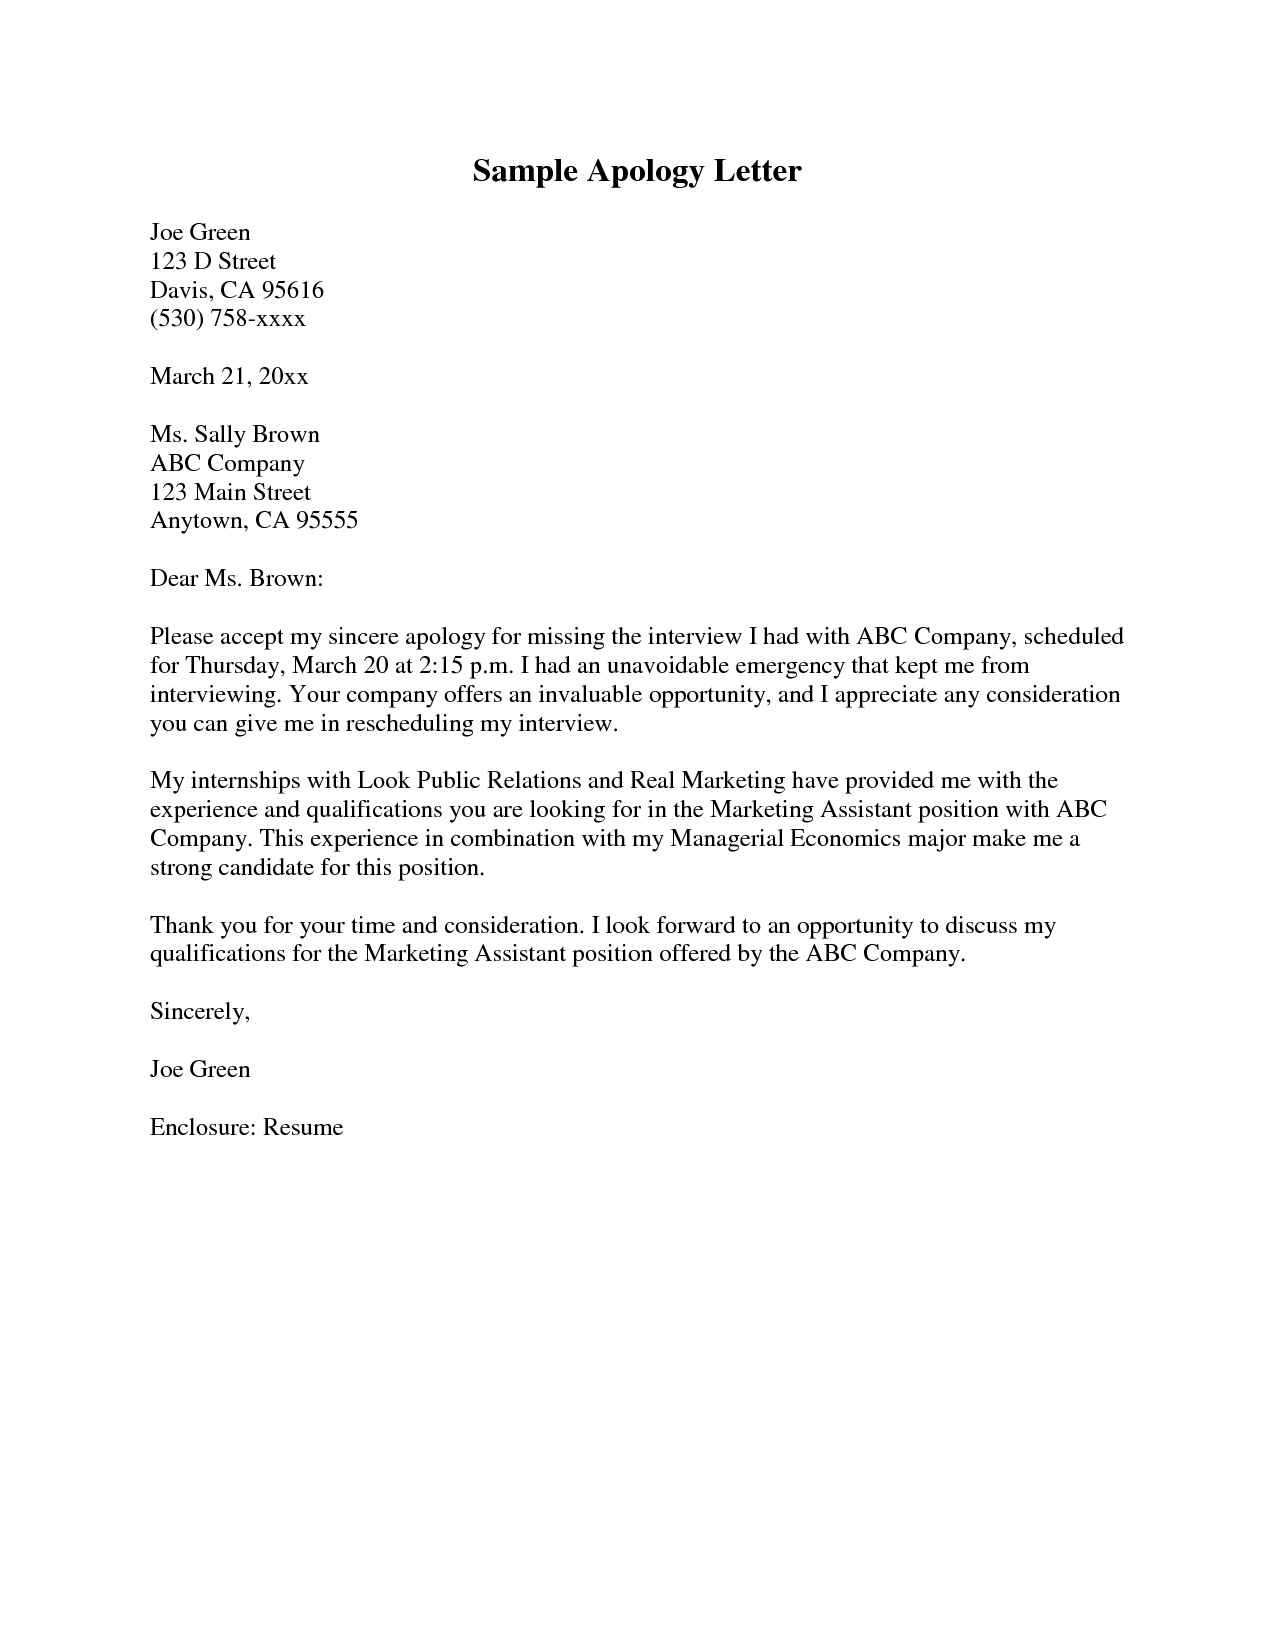 Business Apology Letter Template How To Write An Apology Letter To A Teacher Sampleletter Of .